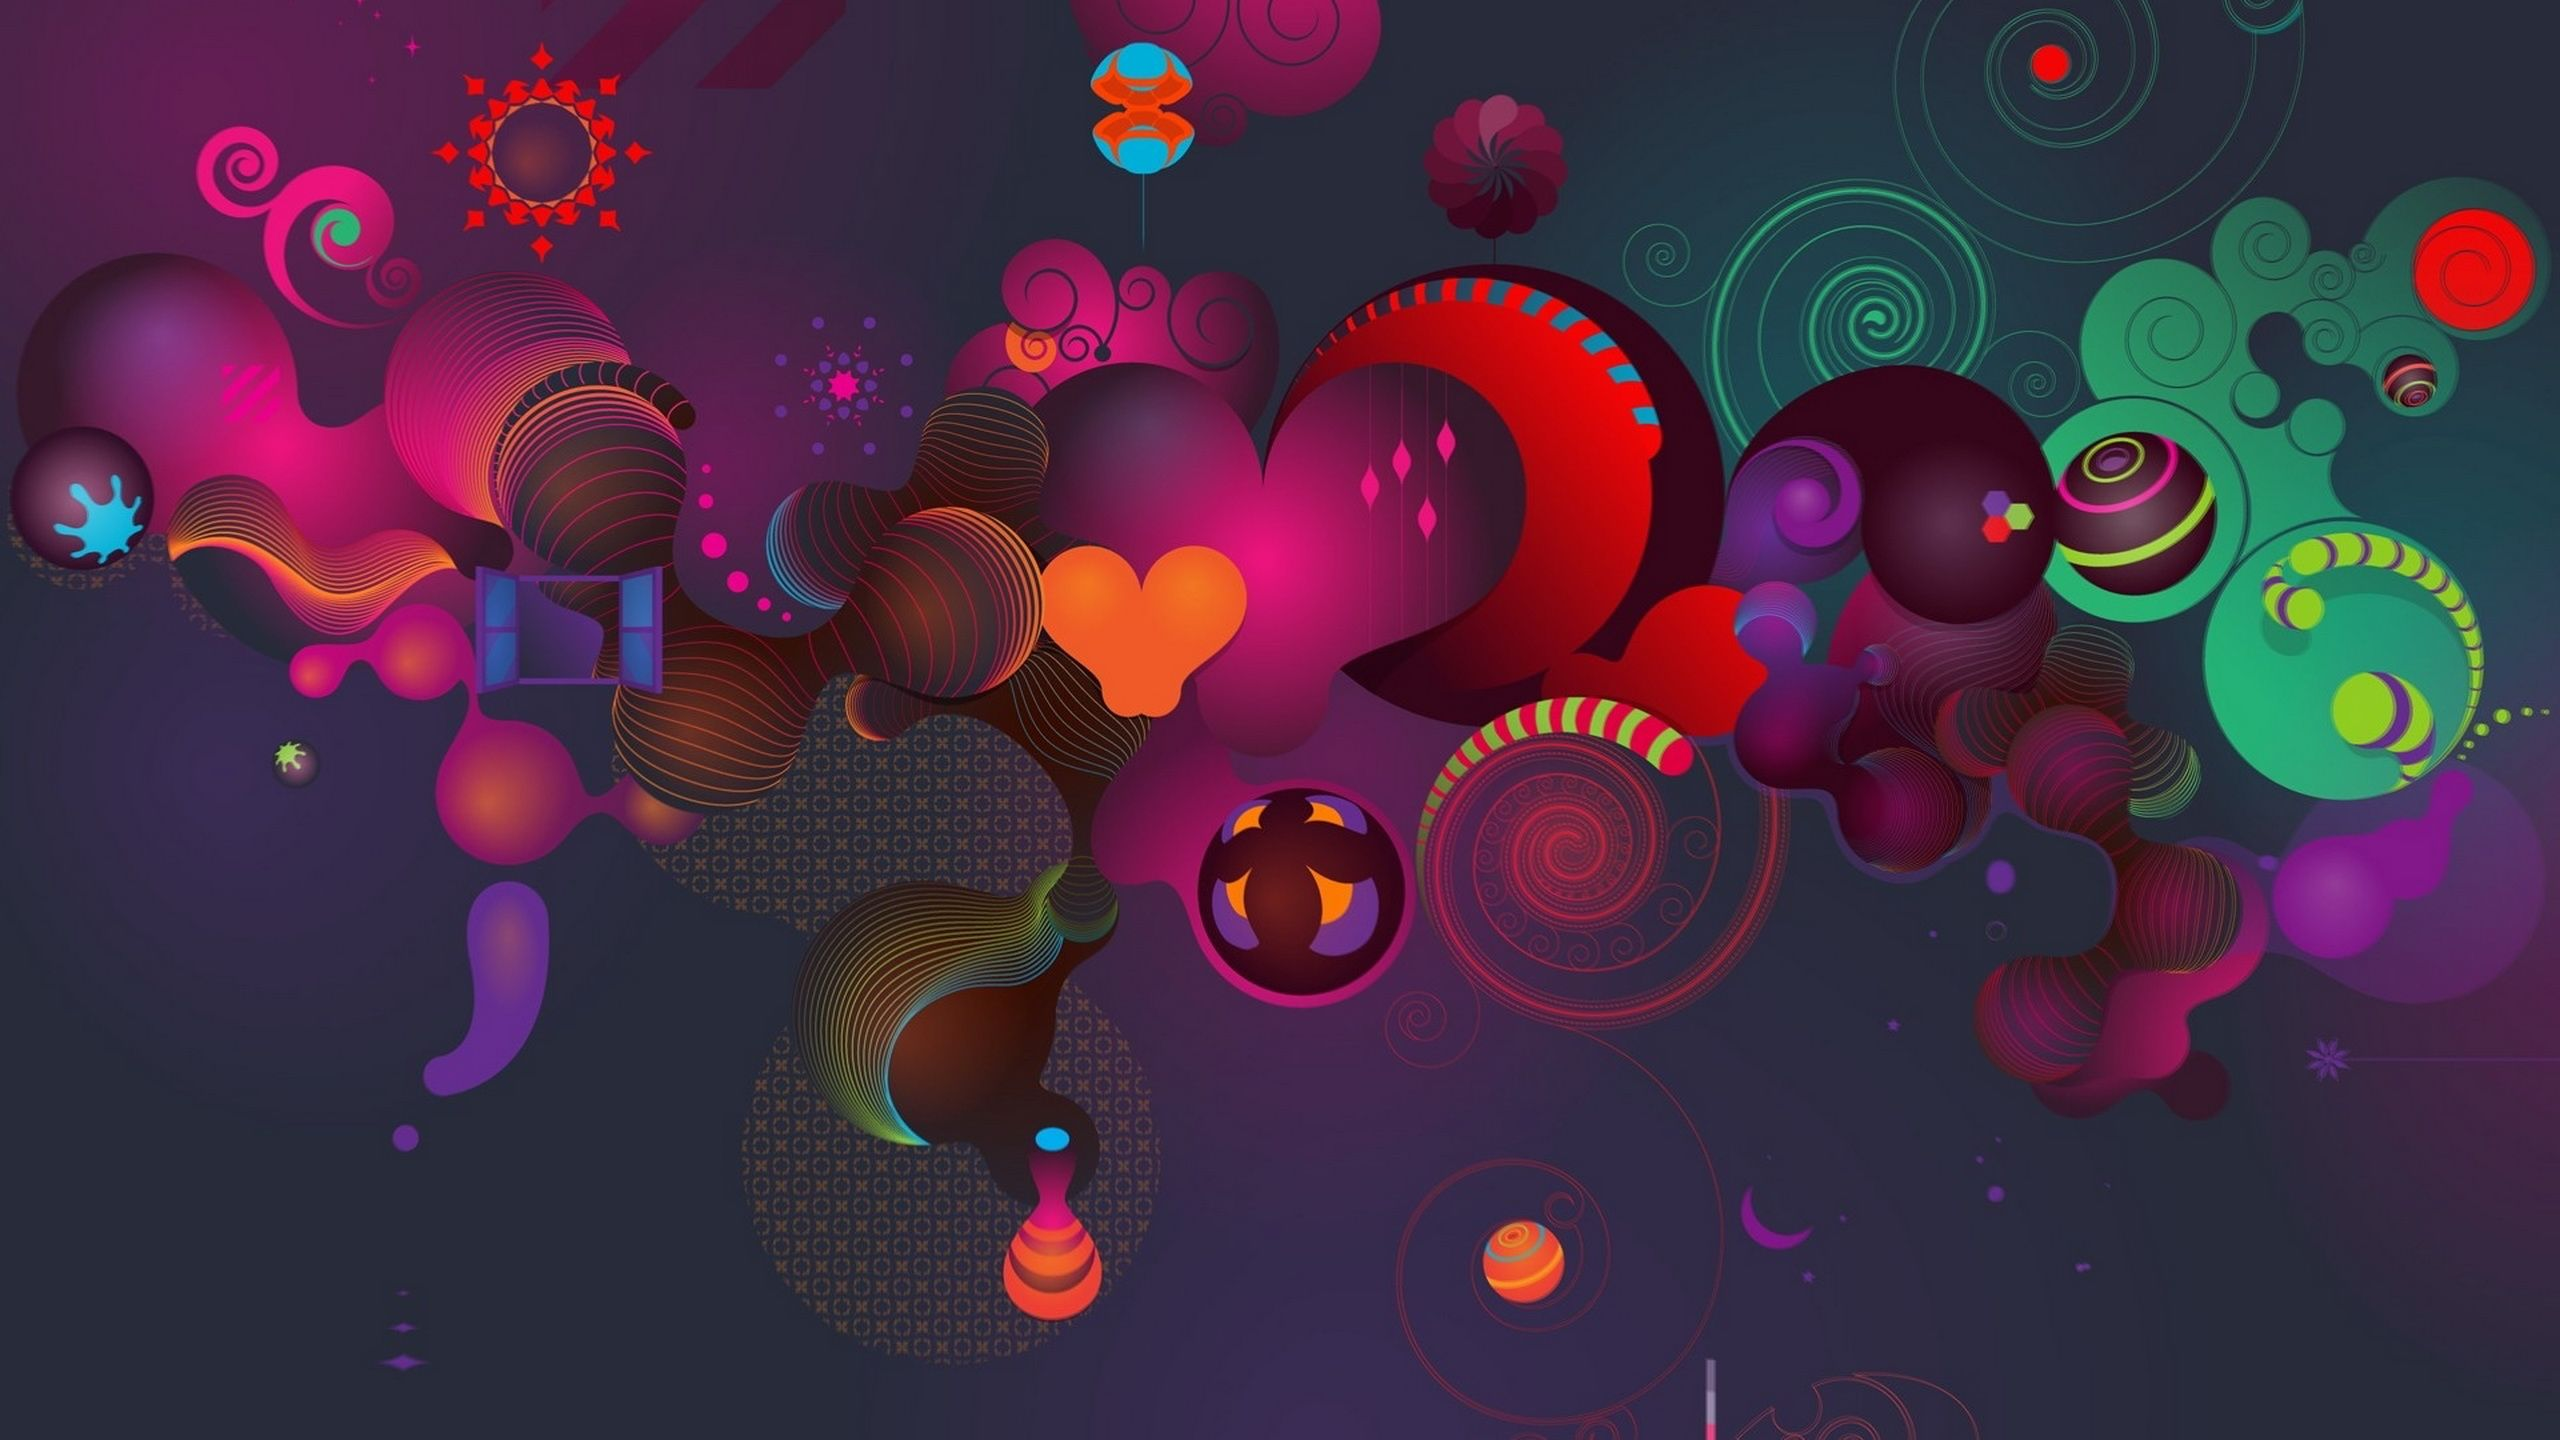 Love Abstract Wallpapers Wallpaper × Abstract Love